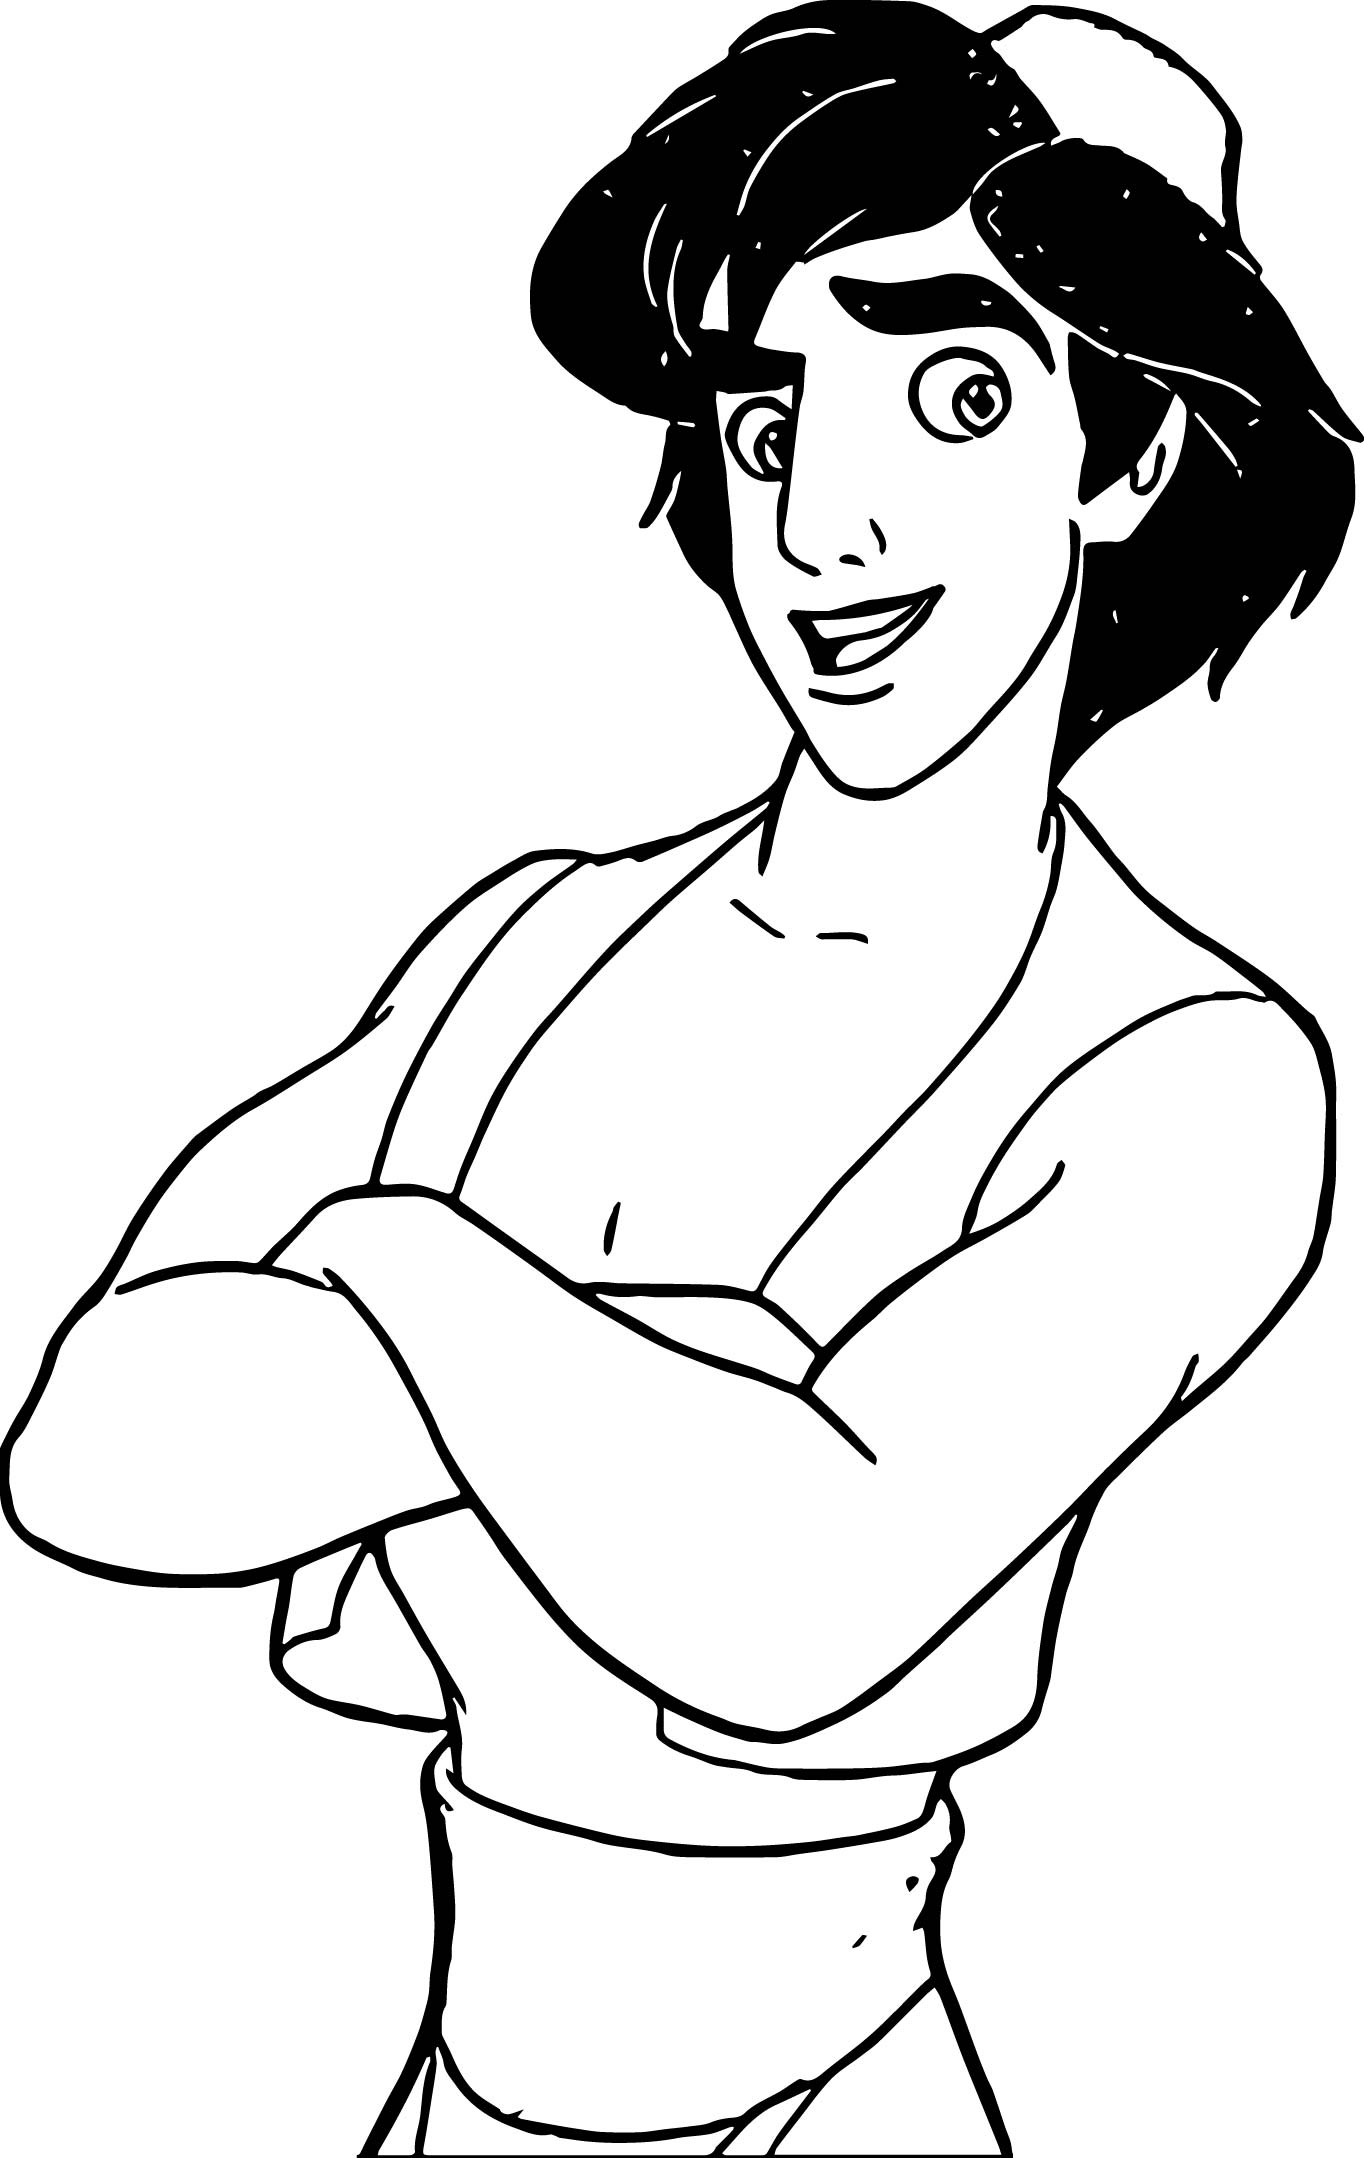 Walt Disney Prince Aladdin Walt Disney Characters Ready Coloring Pages